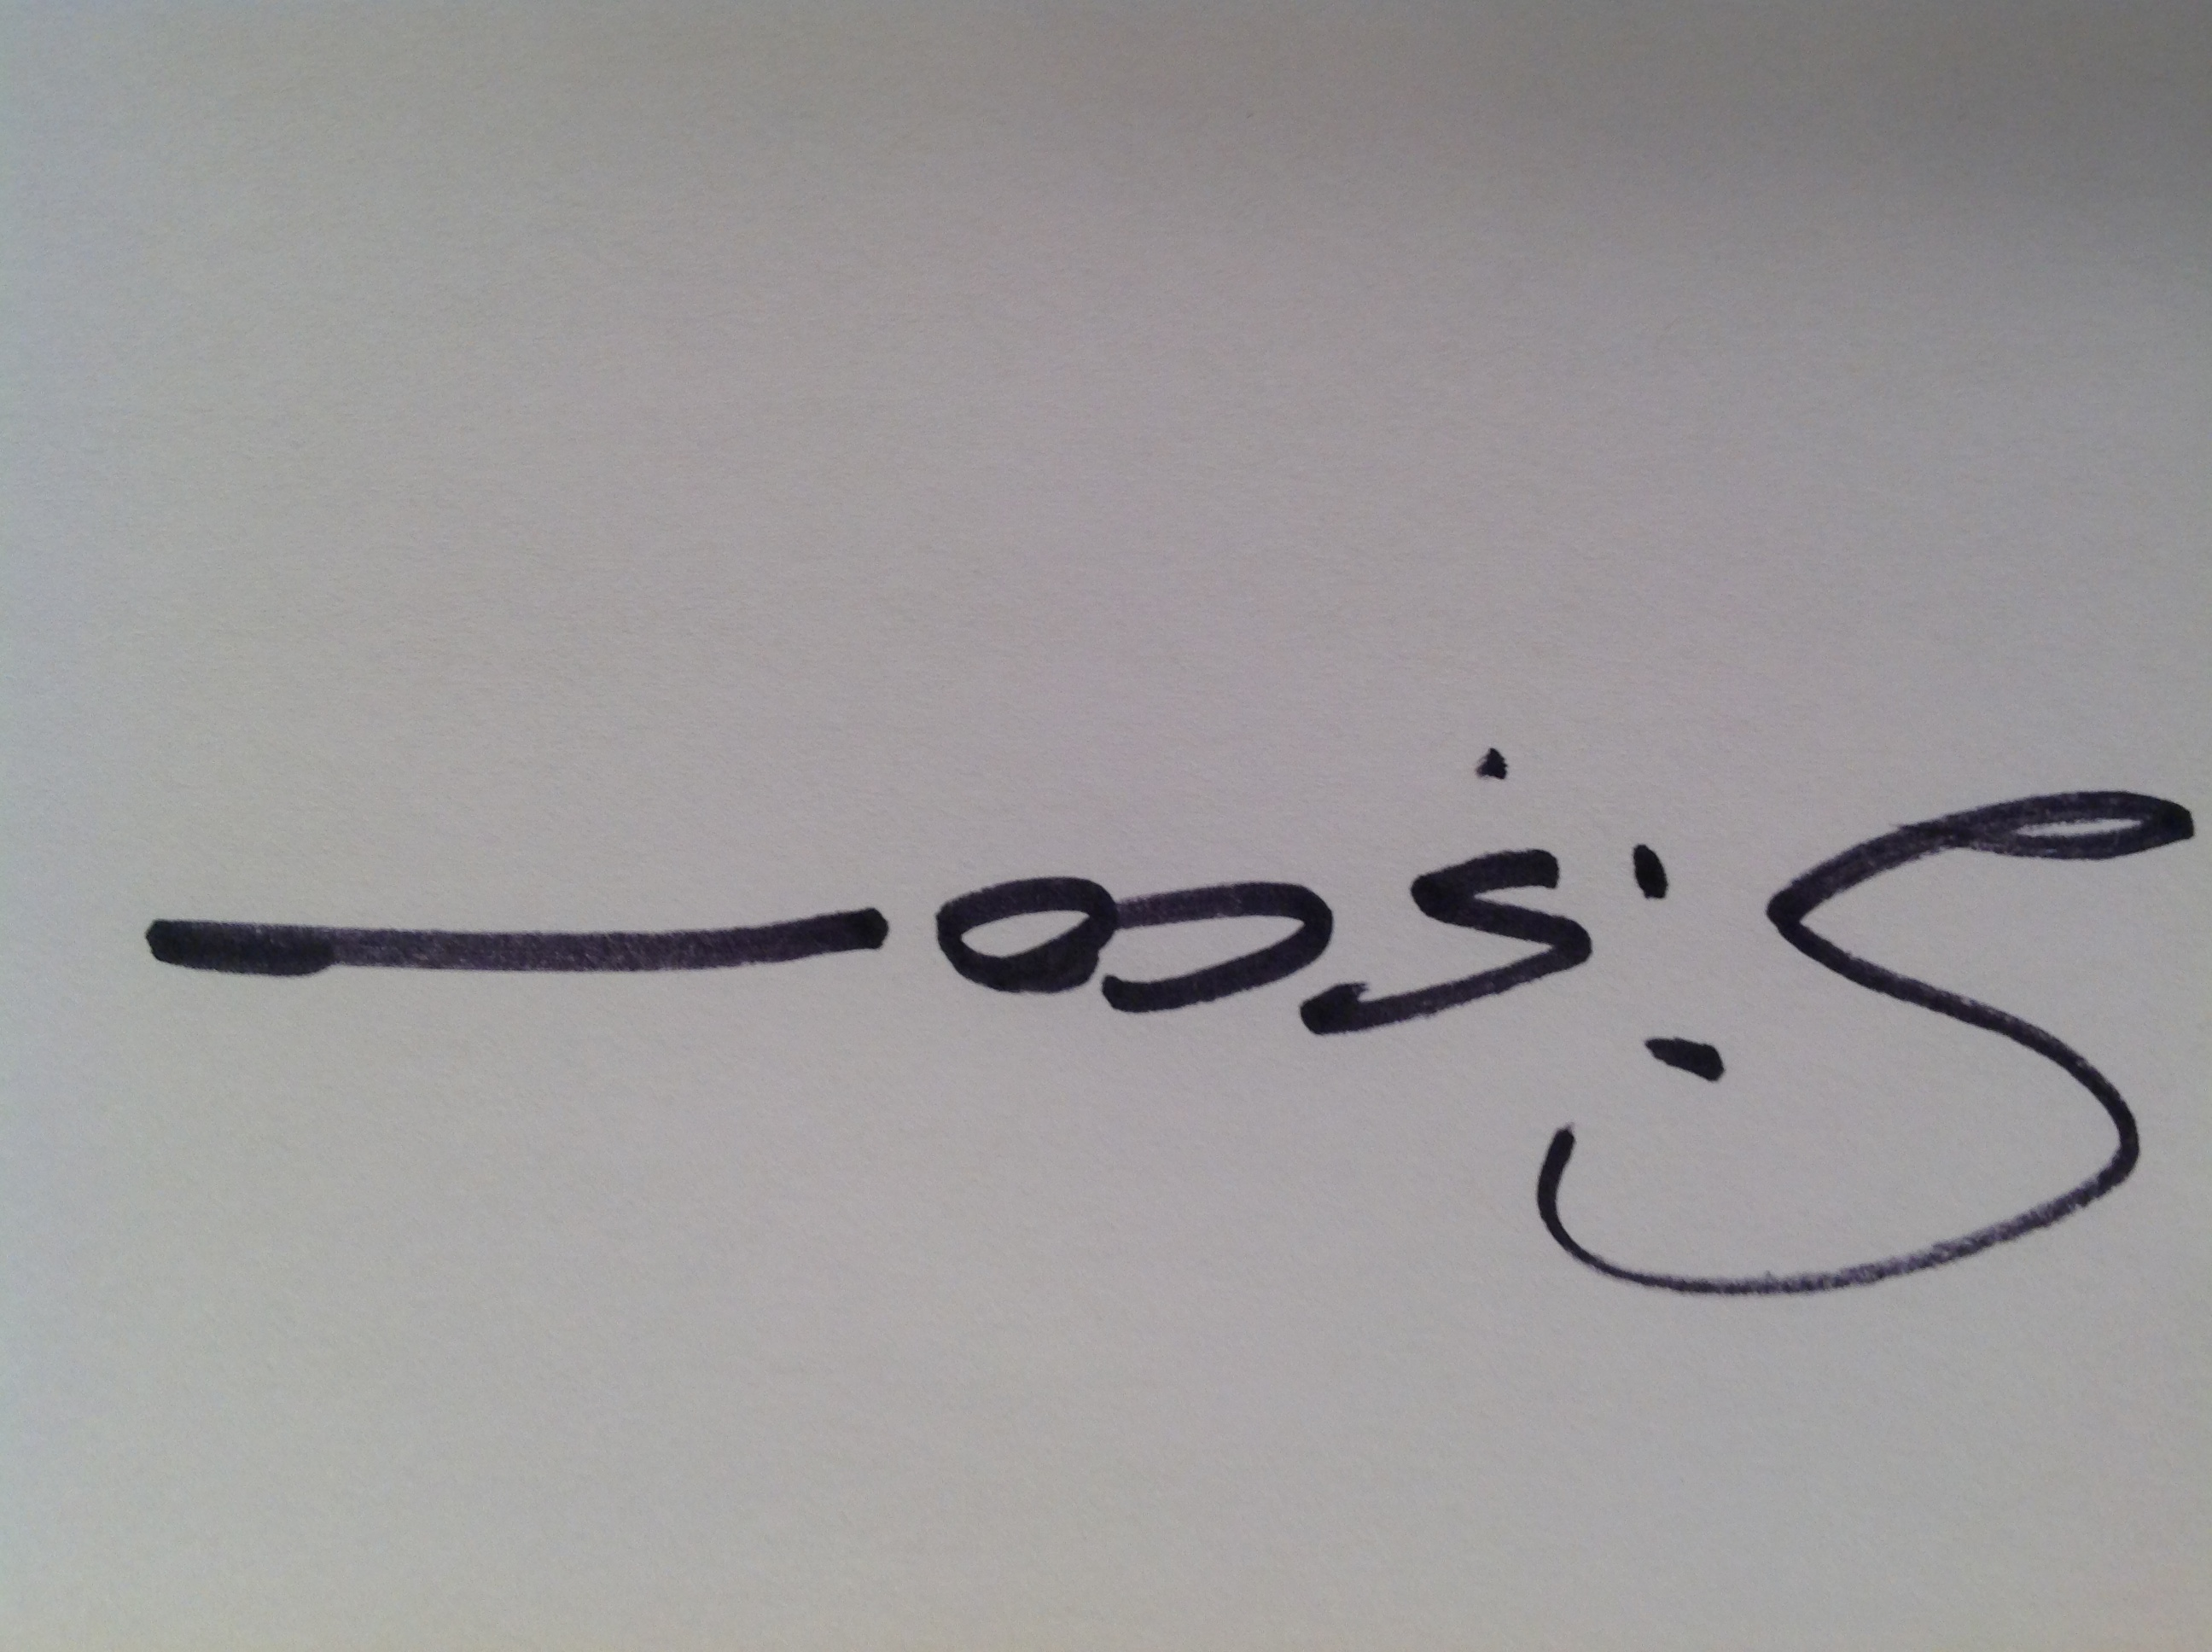 Kirk Sisco's Signature